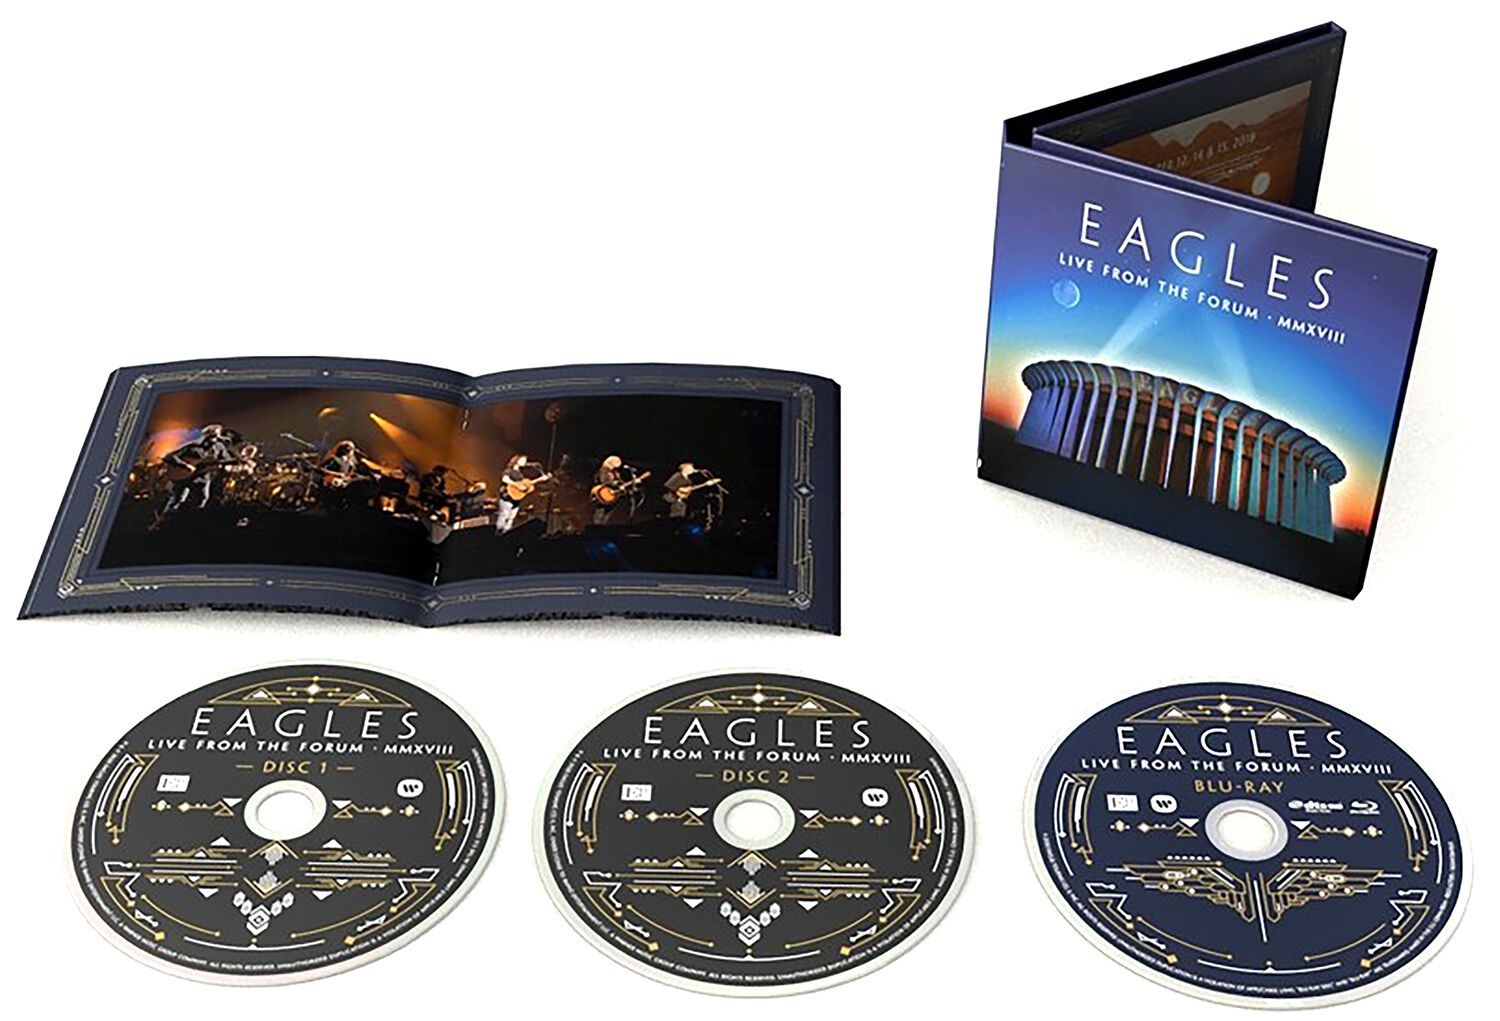 Image of Eagles Live from the Forum MMXVIII 2-CD & Blu-ray Standard